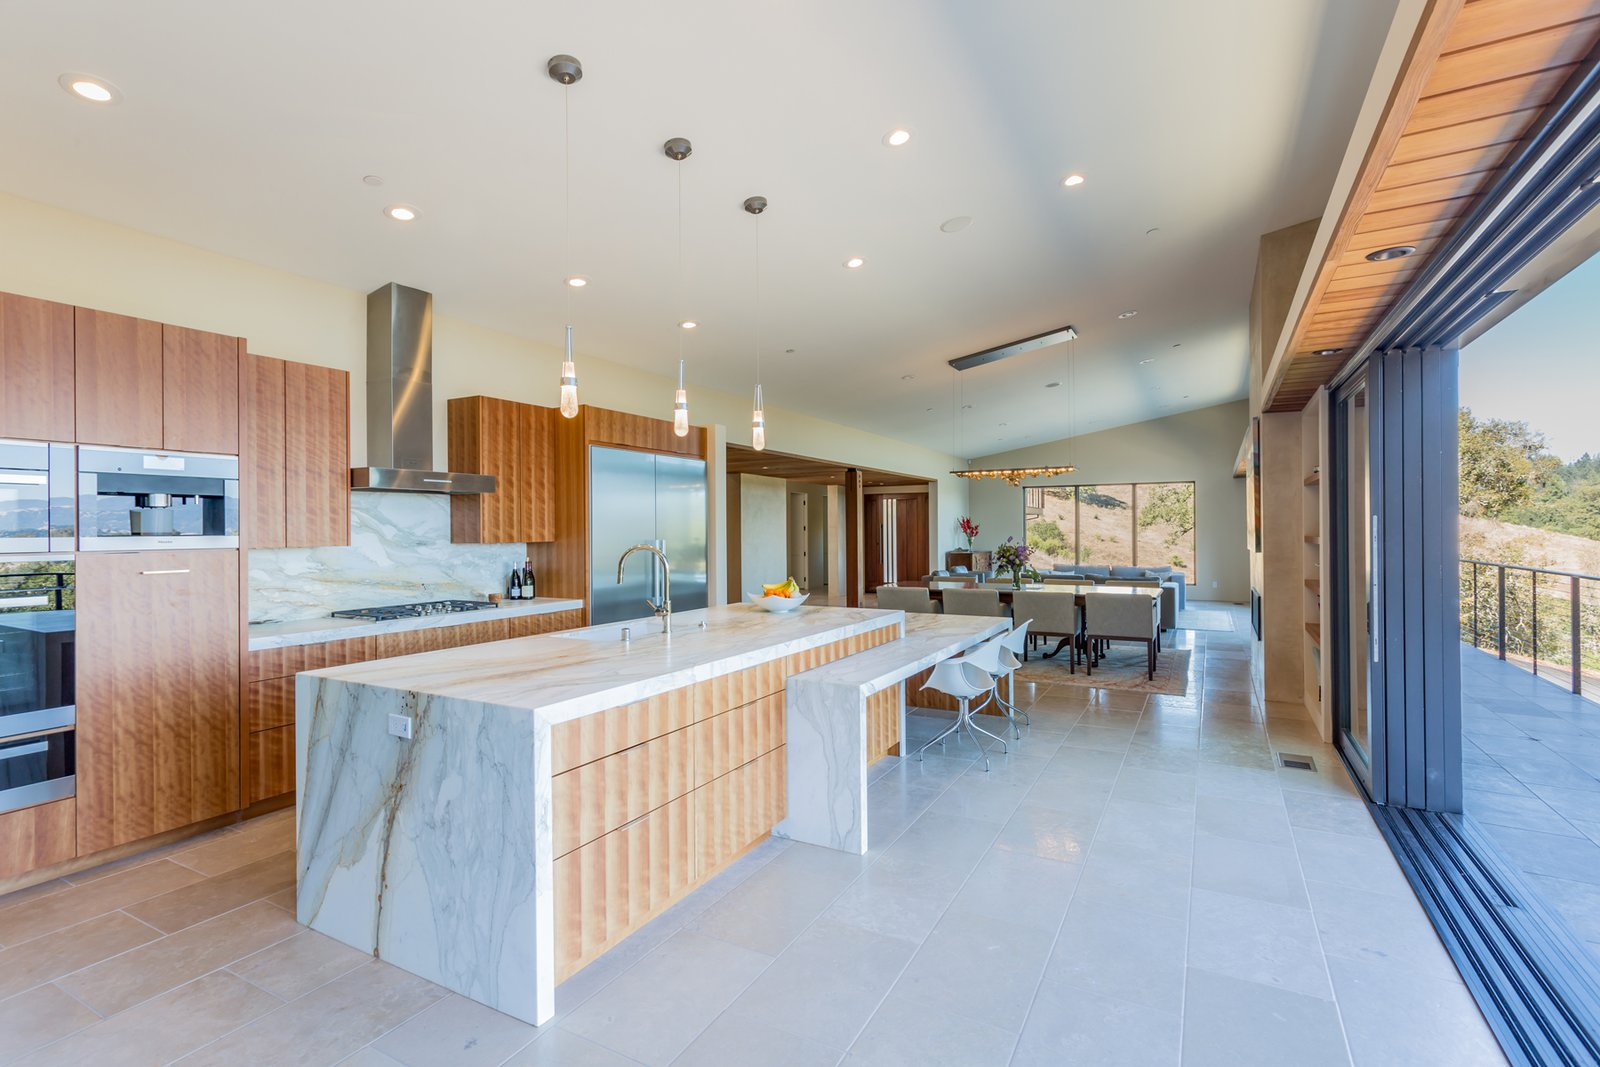 Healdsburg Home kitchen with wood cabinetry and marble finishes